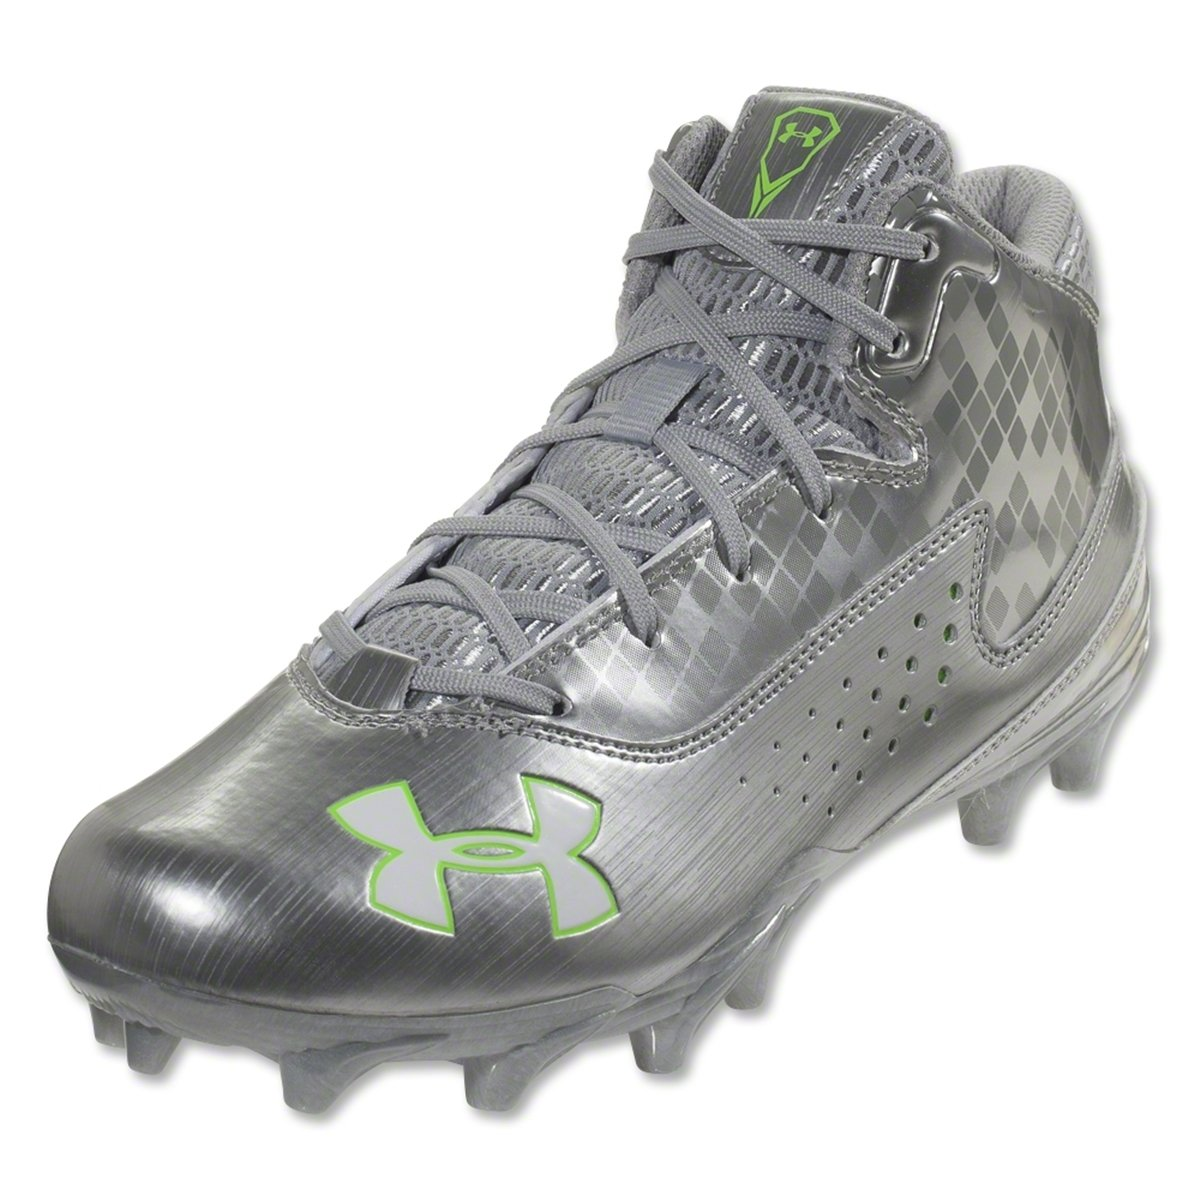 Mens Under Armour Ripshot Mid MC Lacrosse Cleat Metallic Silver/Hyper Green